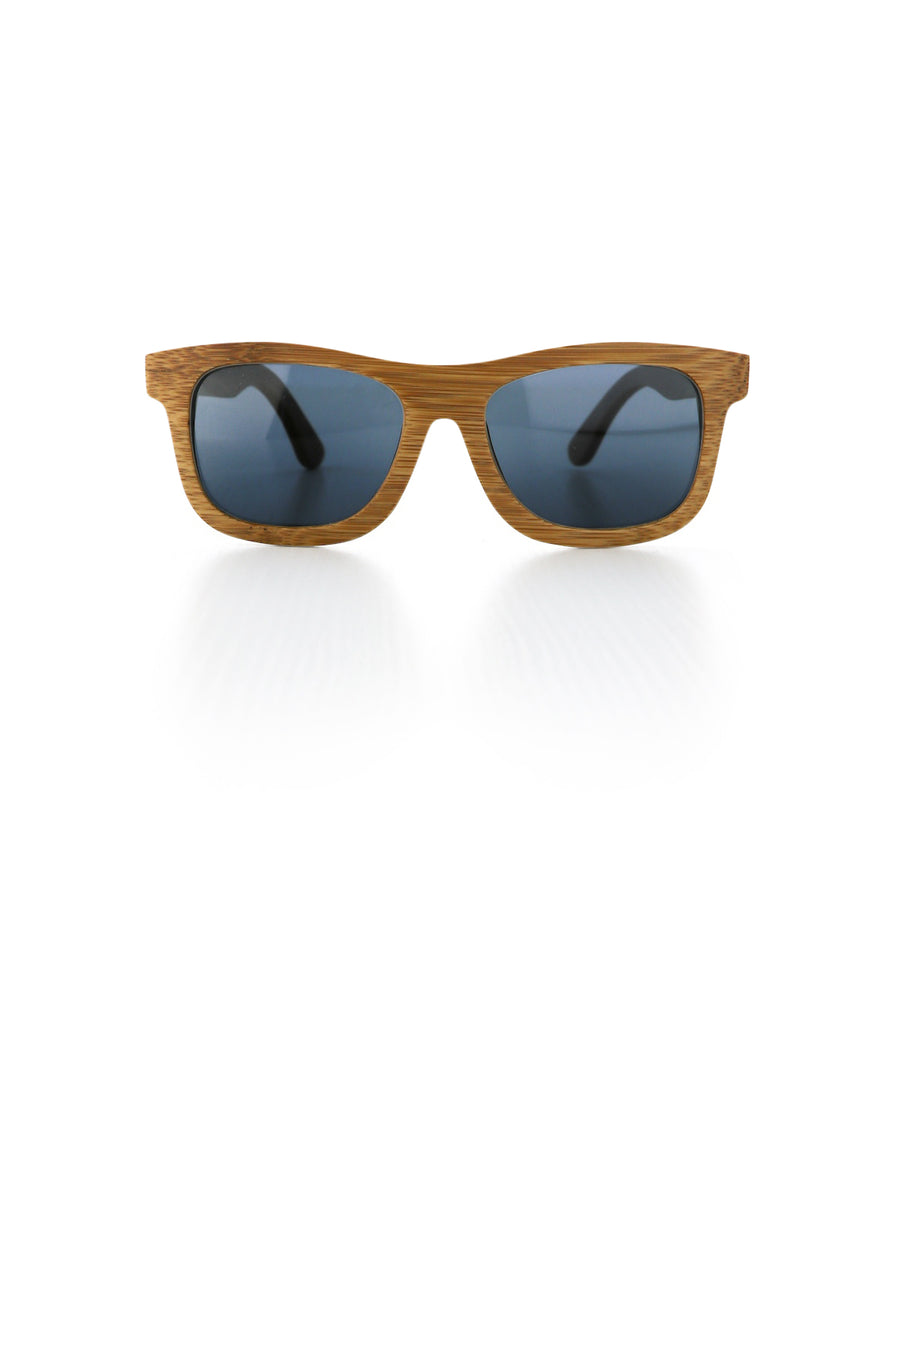 Bamboo Sunglasses - Roger Ted and Lemon